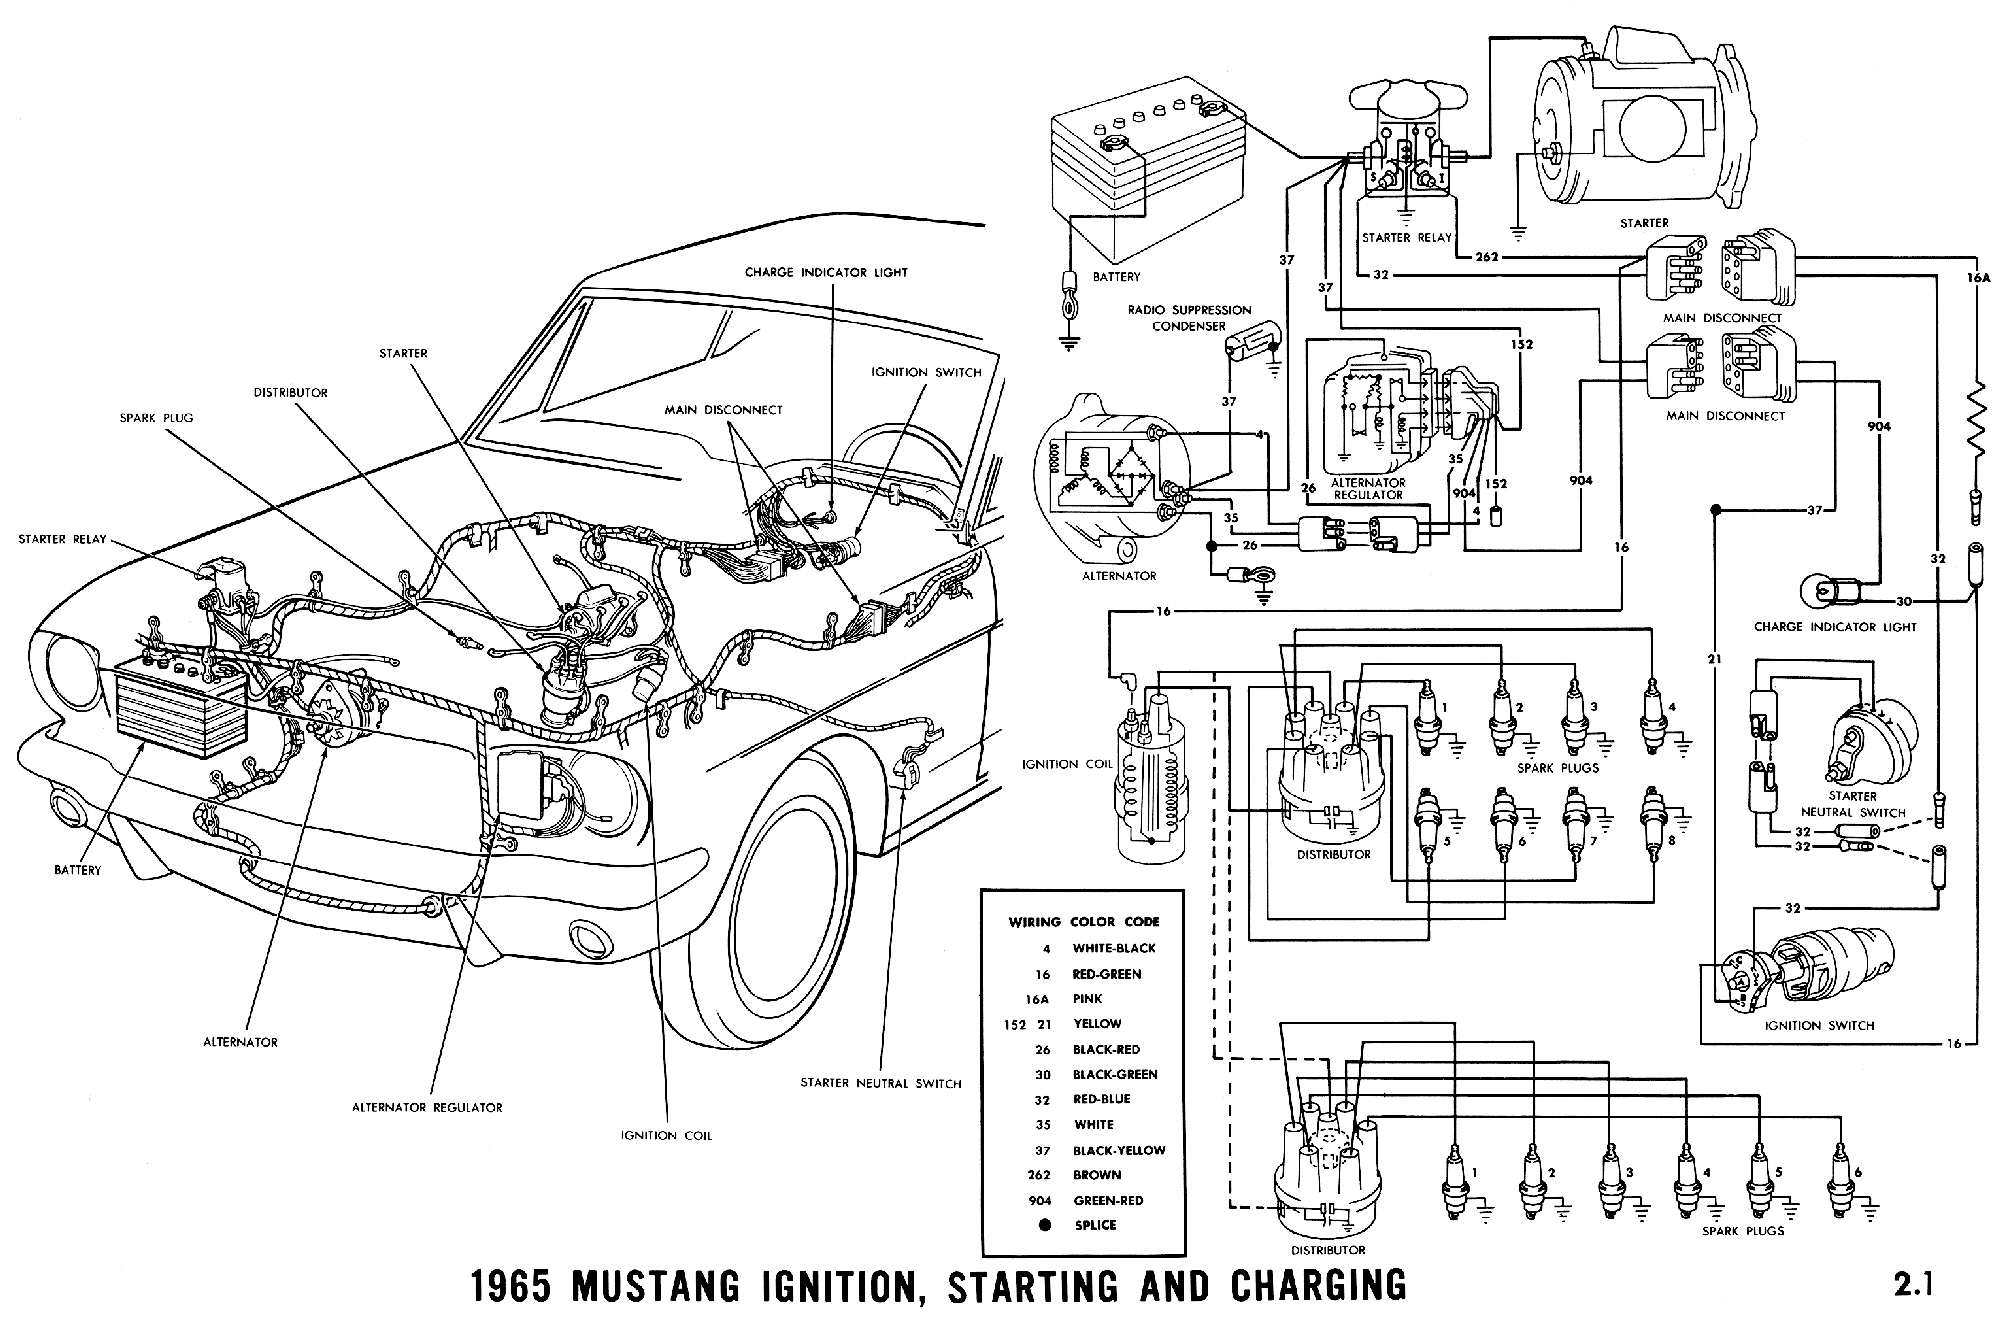 hight resolution of 1966 ford mustang ignition switch wiring diagram wiring diagram list 65 mustang ignition switch wiring diagram